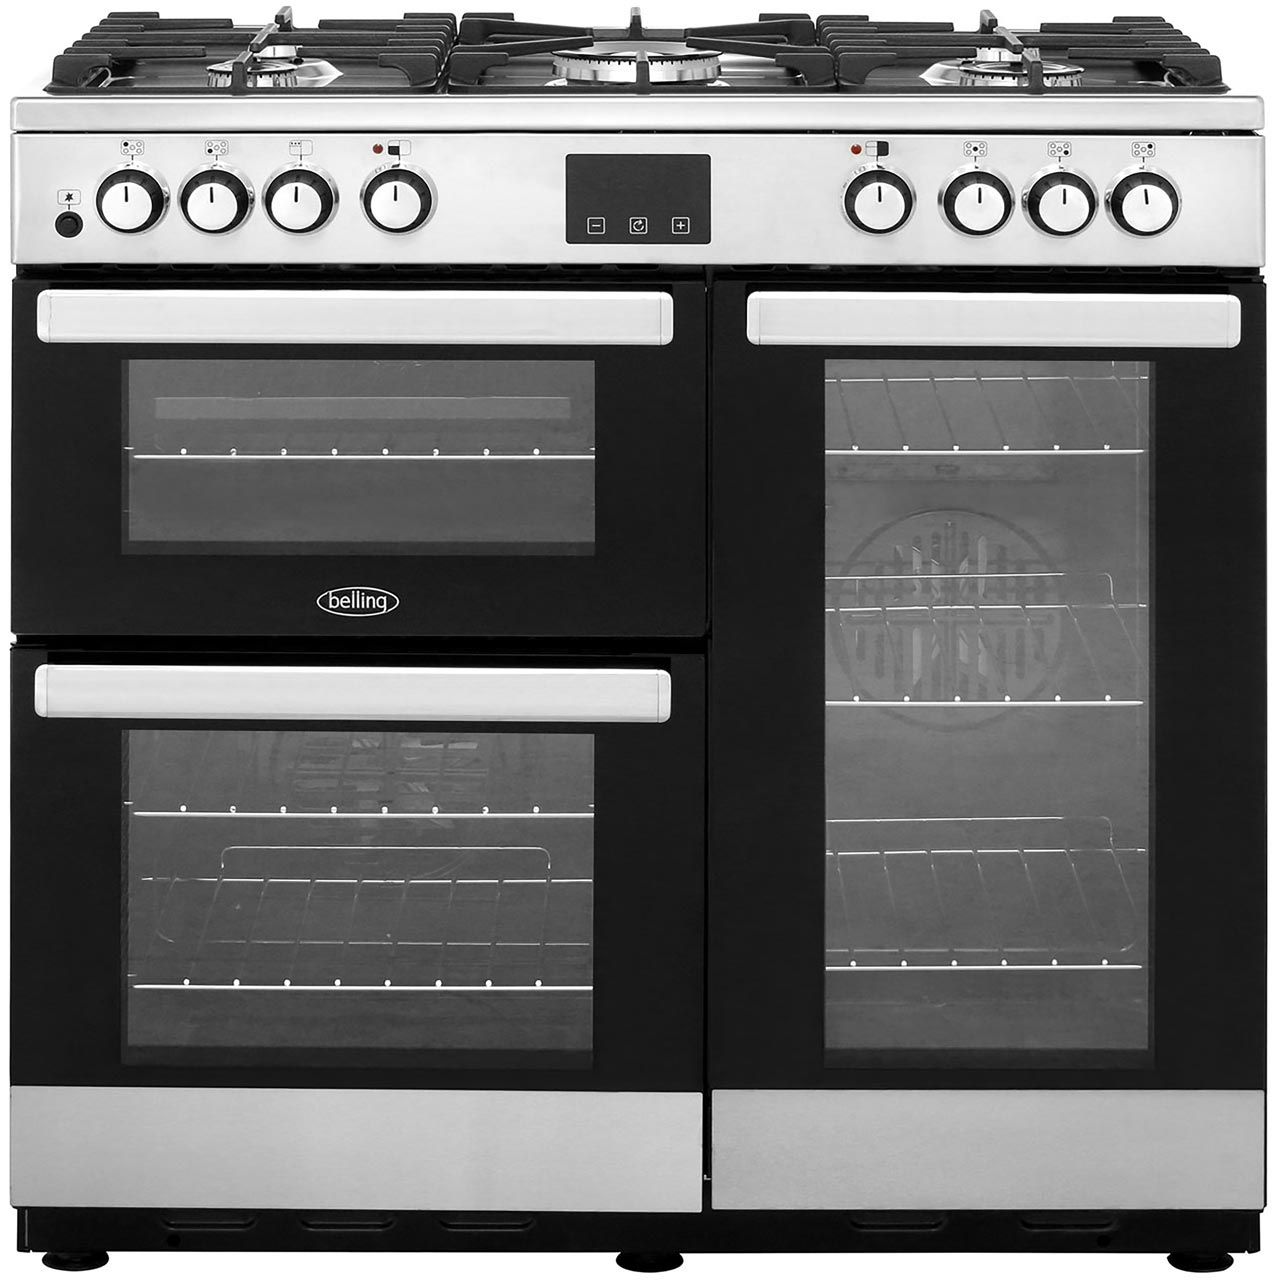 Belling Cookcentre90dft 90cm Dual Fuel Range Cooker Stainless Steel A A Rated Range Cooker Belling Range Cooker Dual Fuel Range Cookers